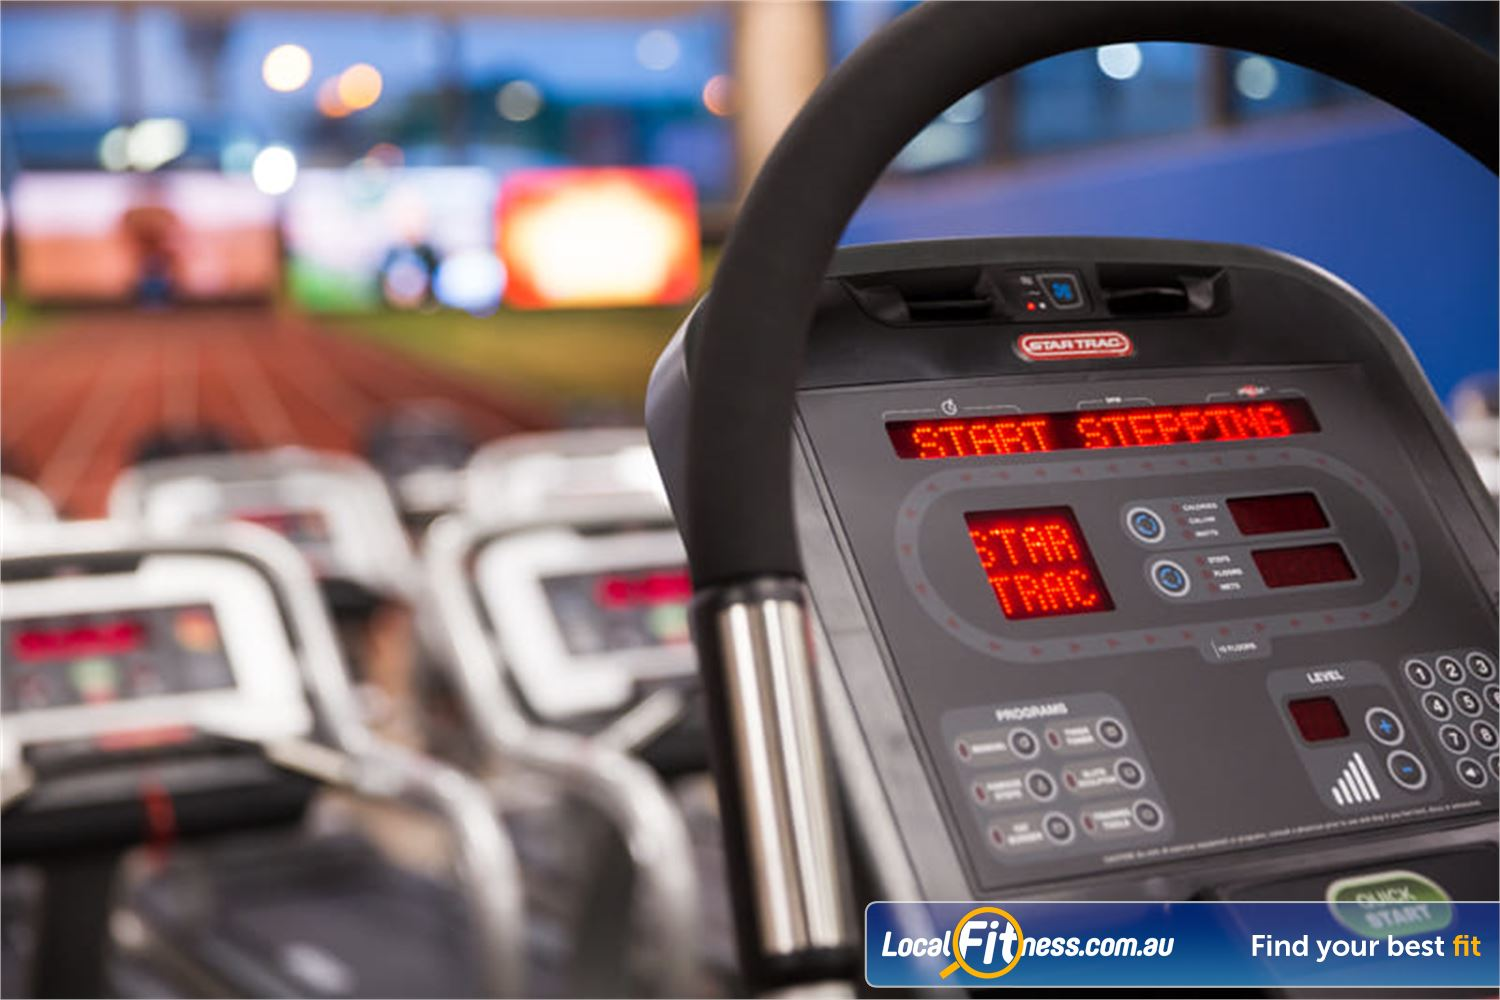 Fit n Fast Near Greenfield Park Track your progress with state of the art cardio.